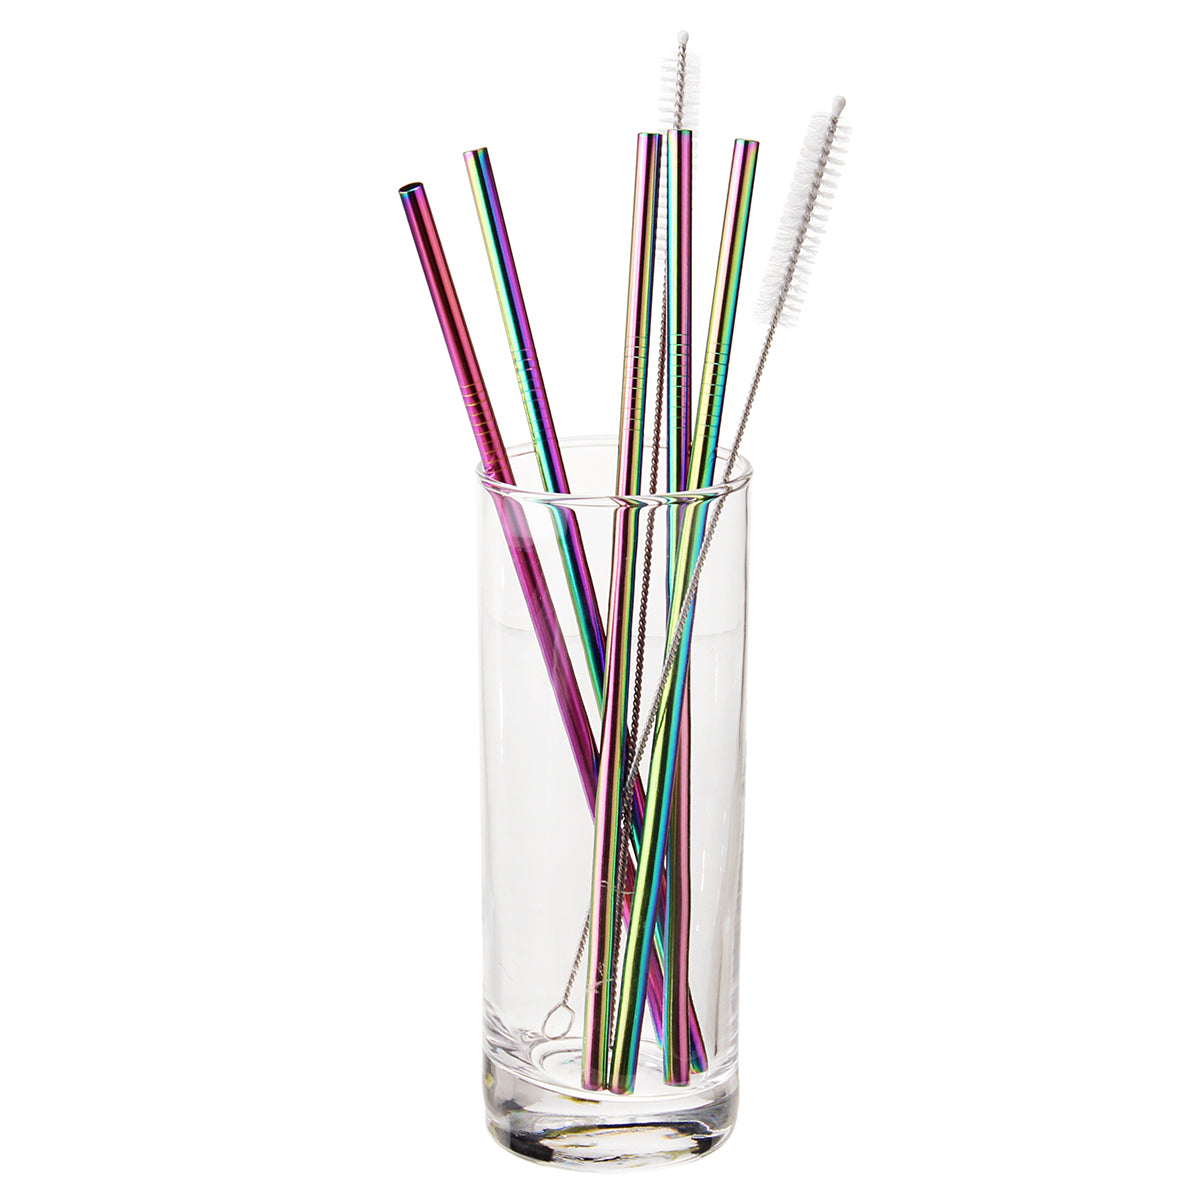 7 Piece Stainless Steel Reusable Drinking Straw Brush Set